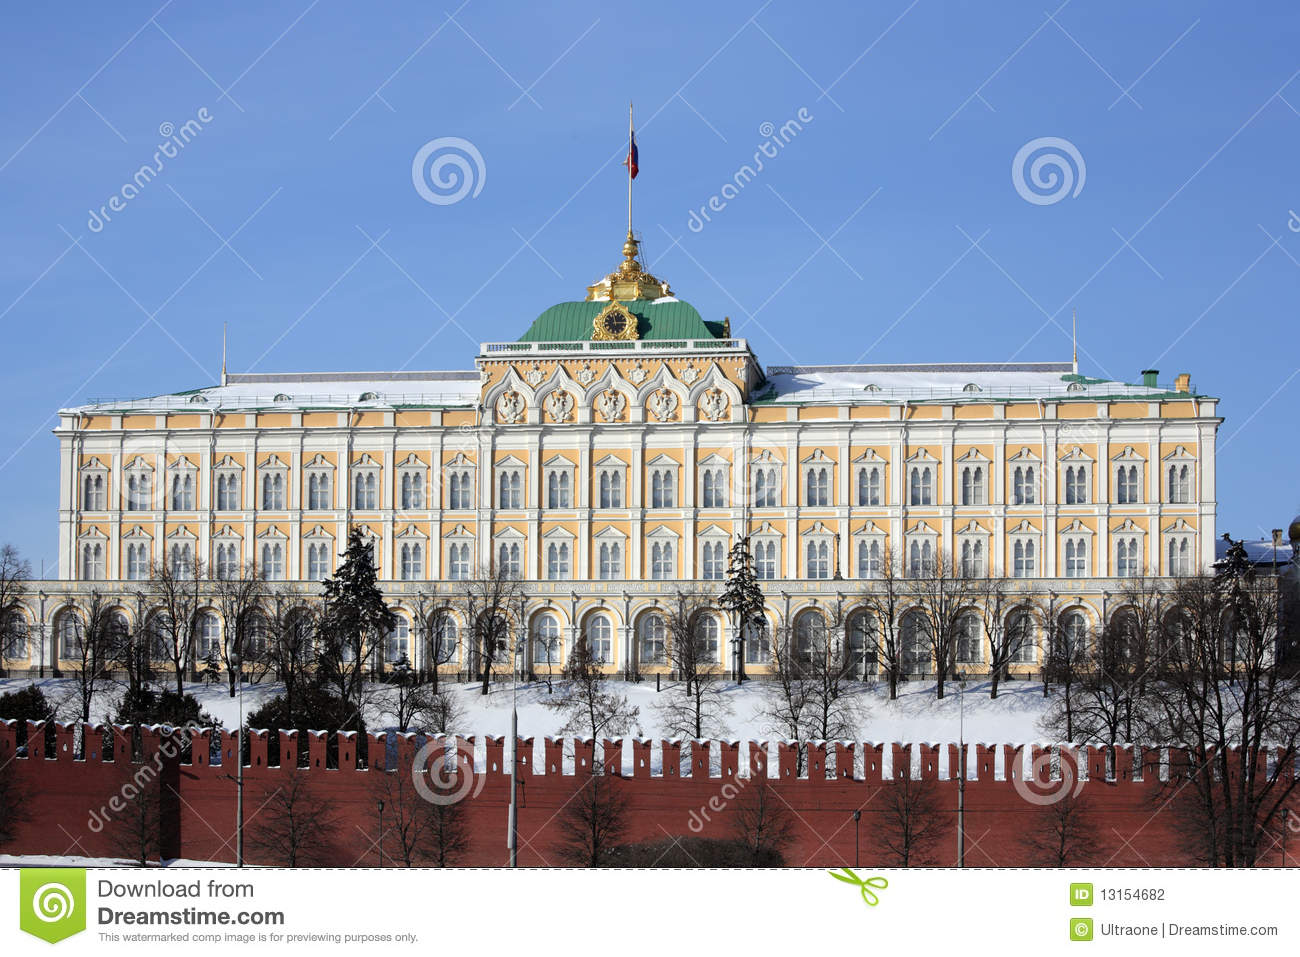 Moscow Kremlin Series. The Grand Kremlin Palace. Stock Photography.